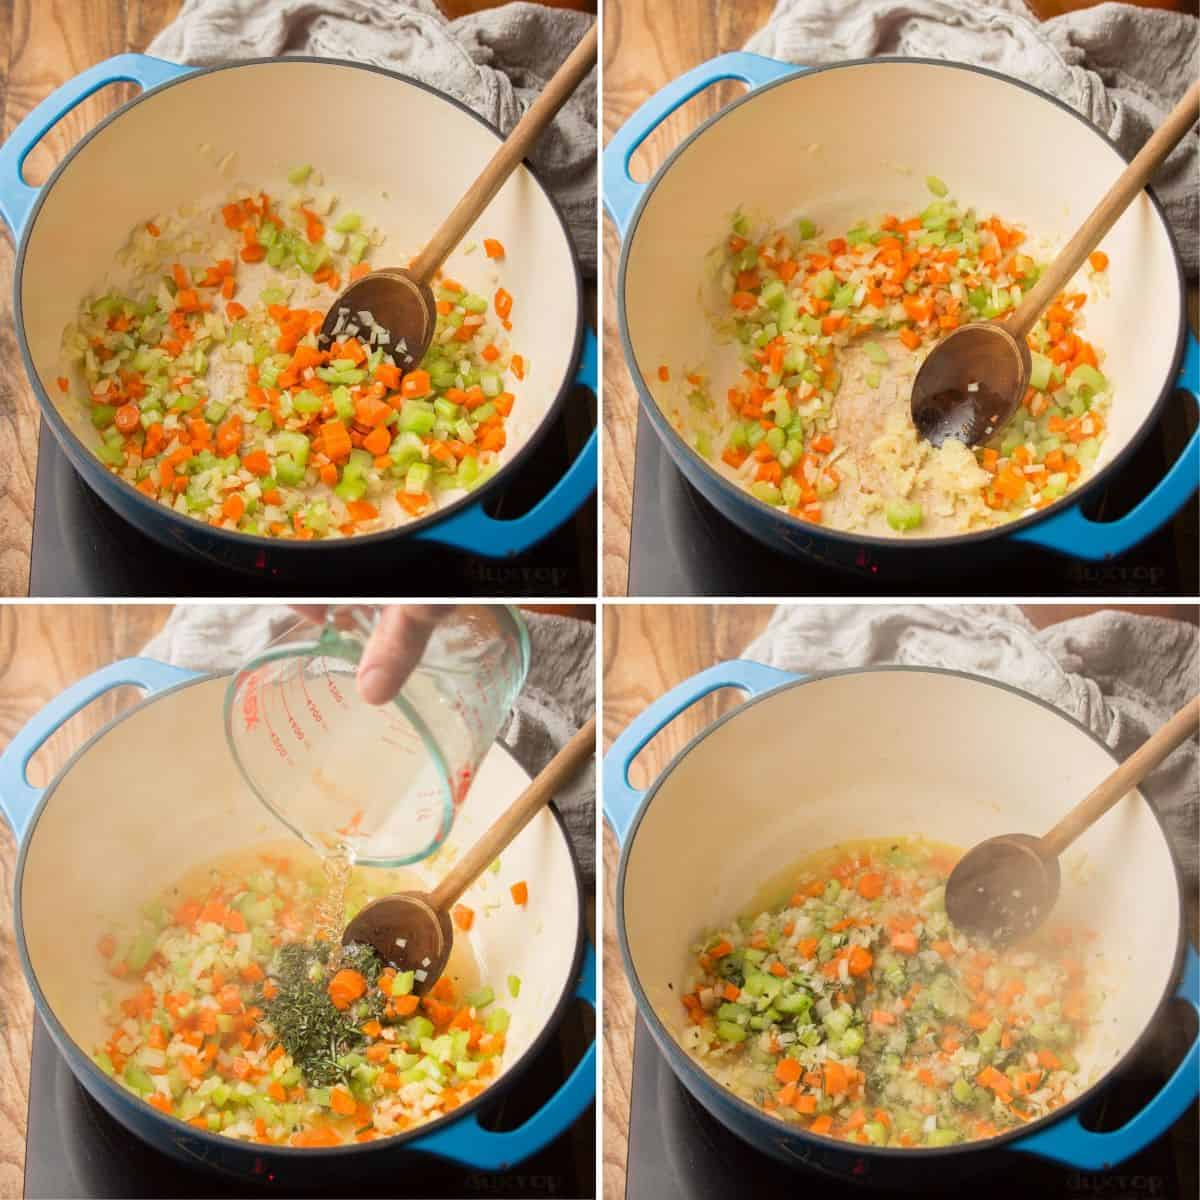 Collage Showing Steps 1-4 for Making Ribollita: Sweat Veggies, Add Garlic, Add Wine and Simmer